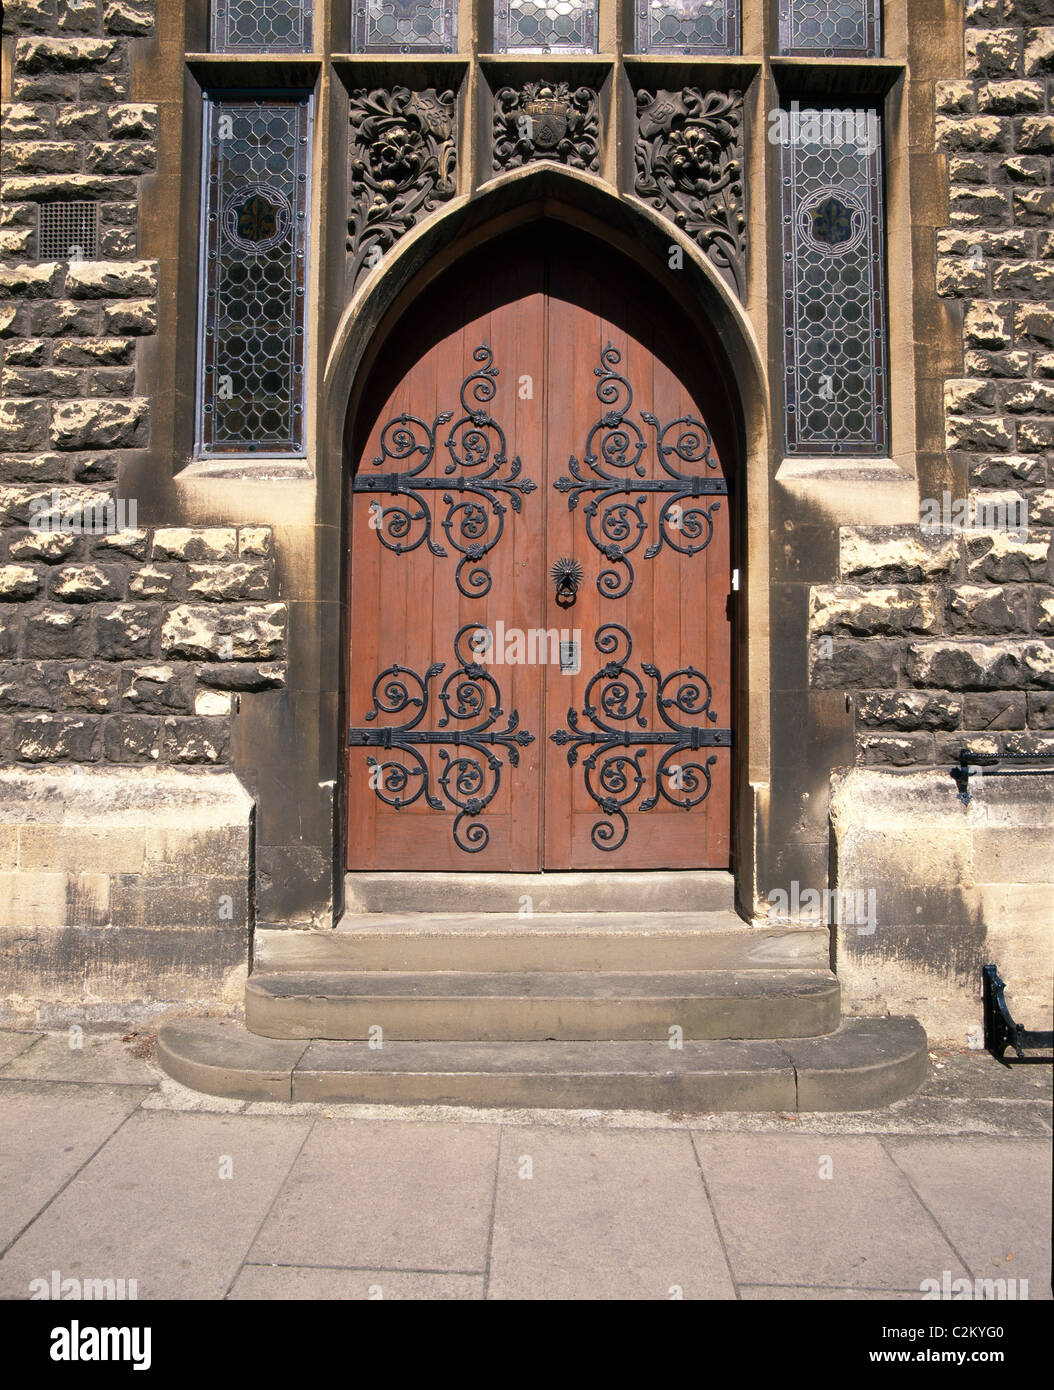 Doors -ecclesiastical type door with ornate ironmongery / hinged in rough cast stone building - Stock Image